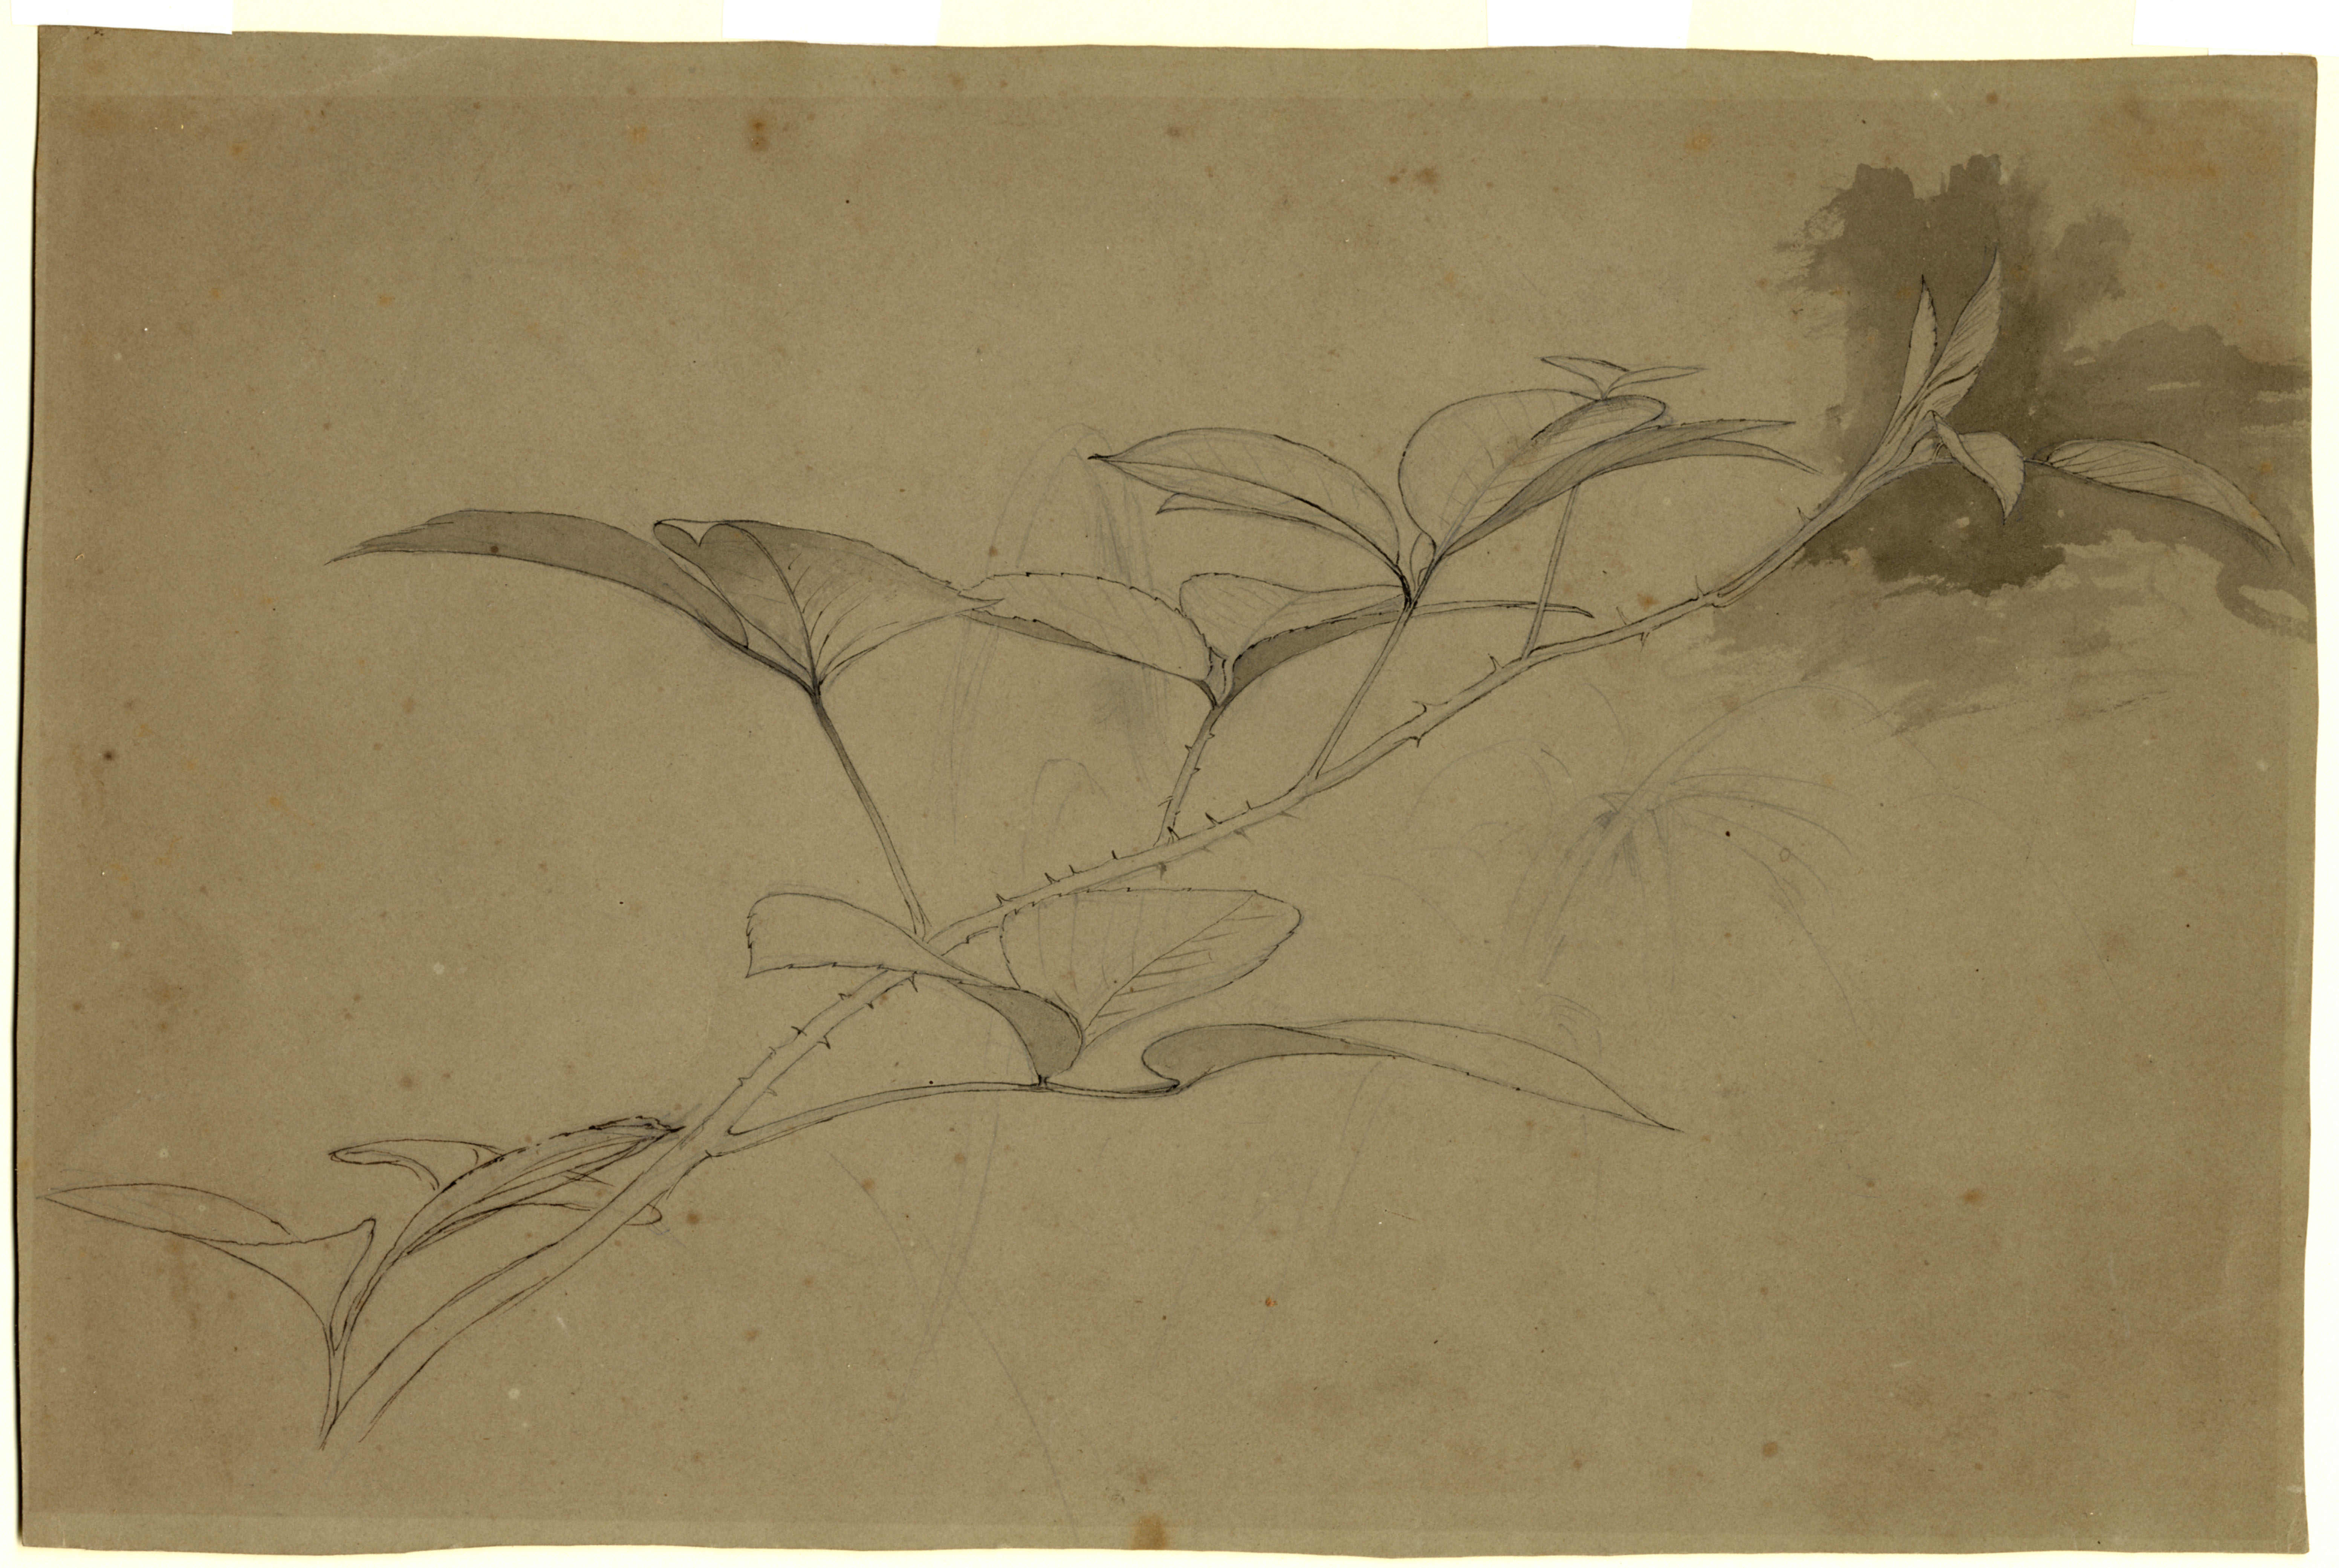 John Ruskin, Leaf Studies - Bramble, RF1344 © Ruskin Foundation